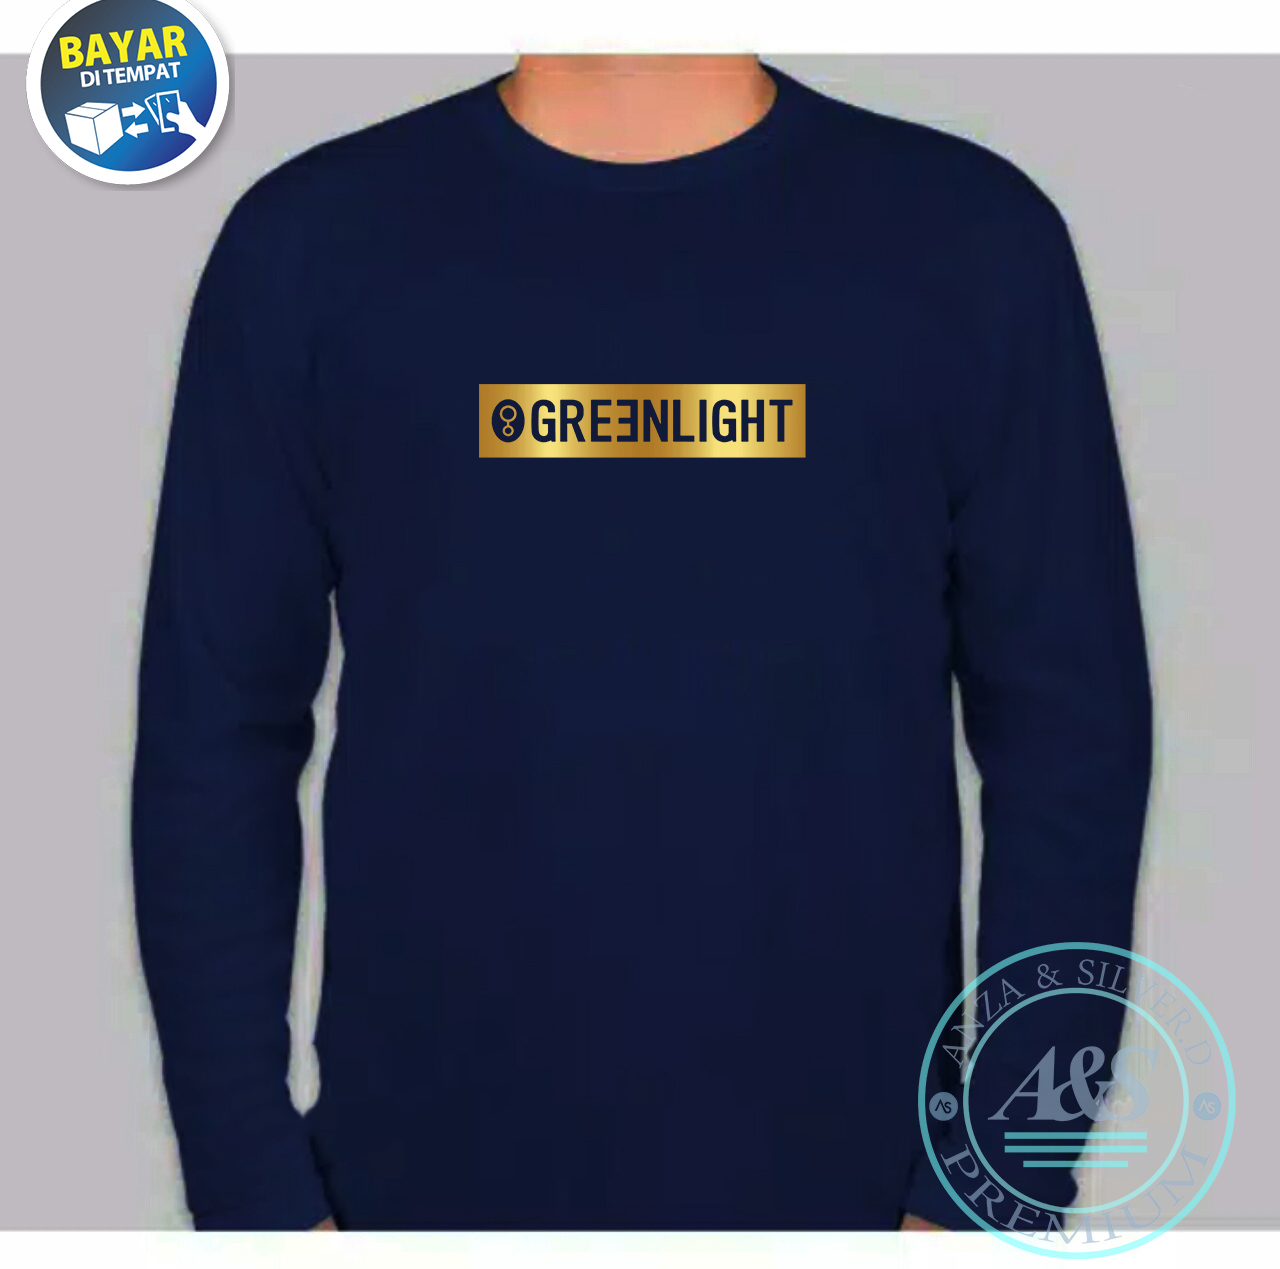 kaos distro greenlight  bulat keren premium quality text black